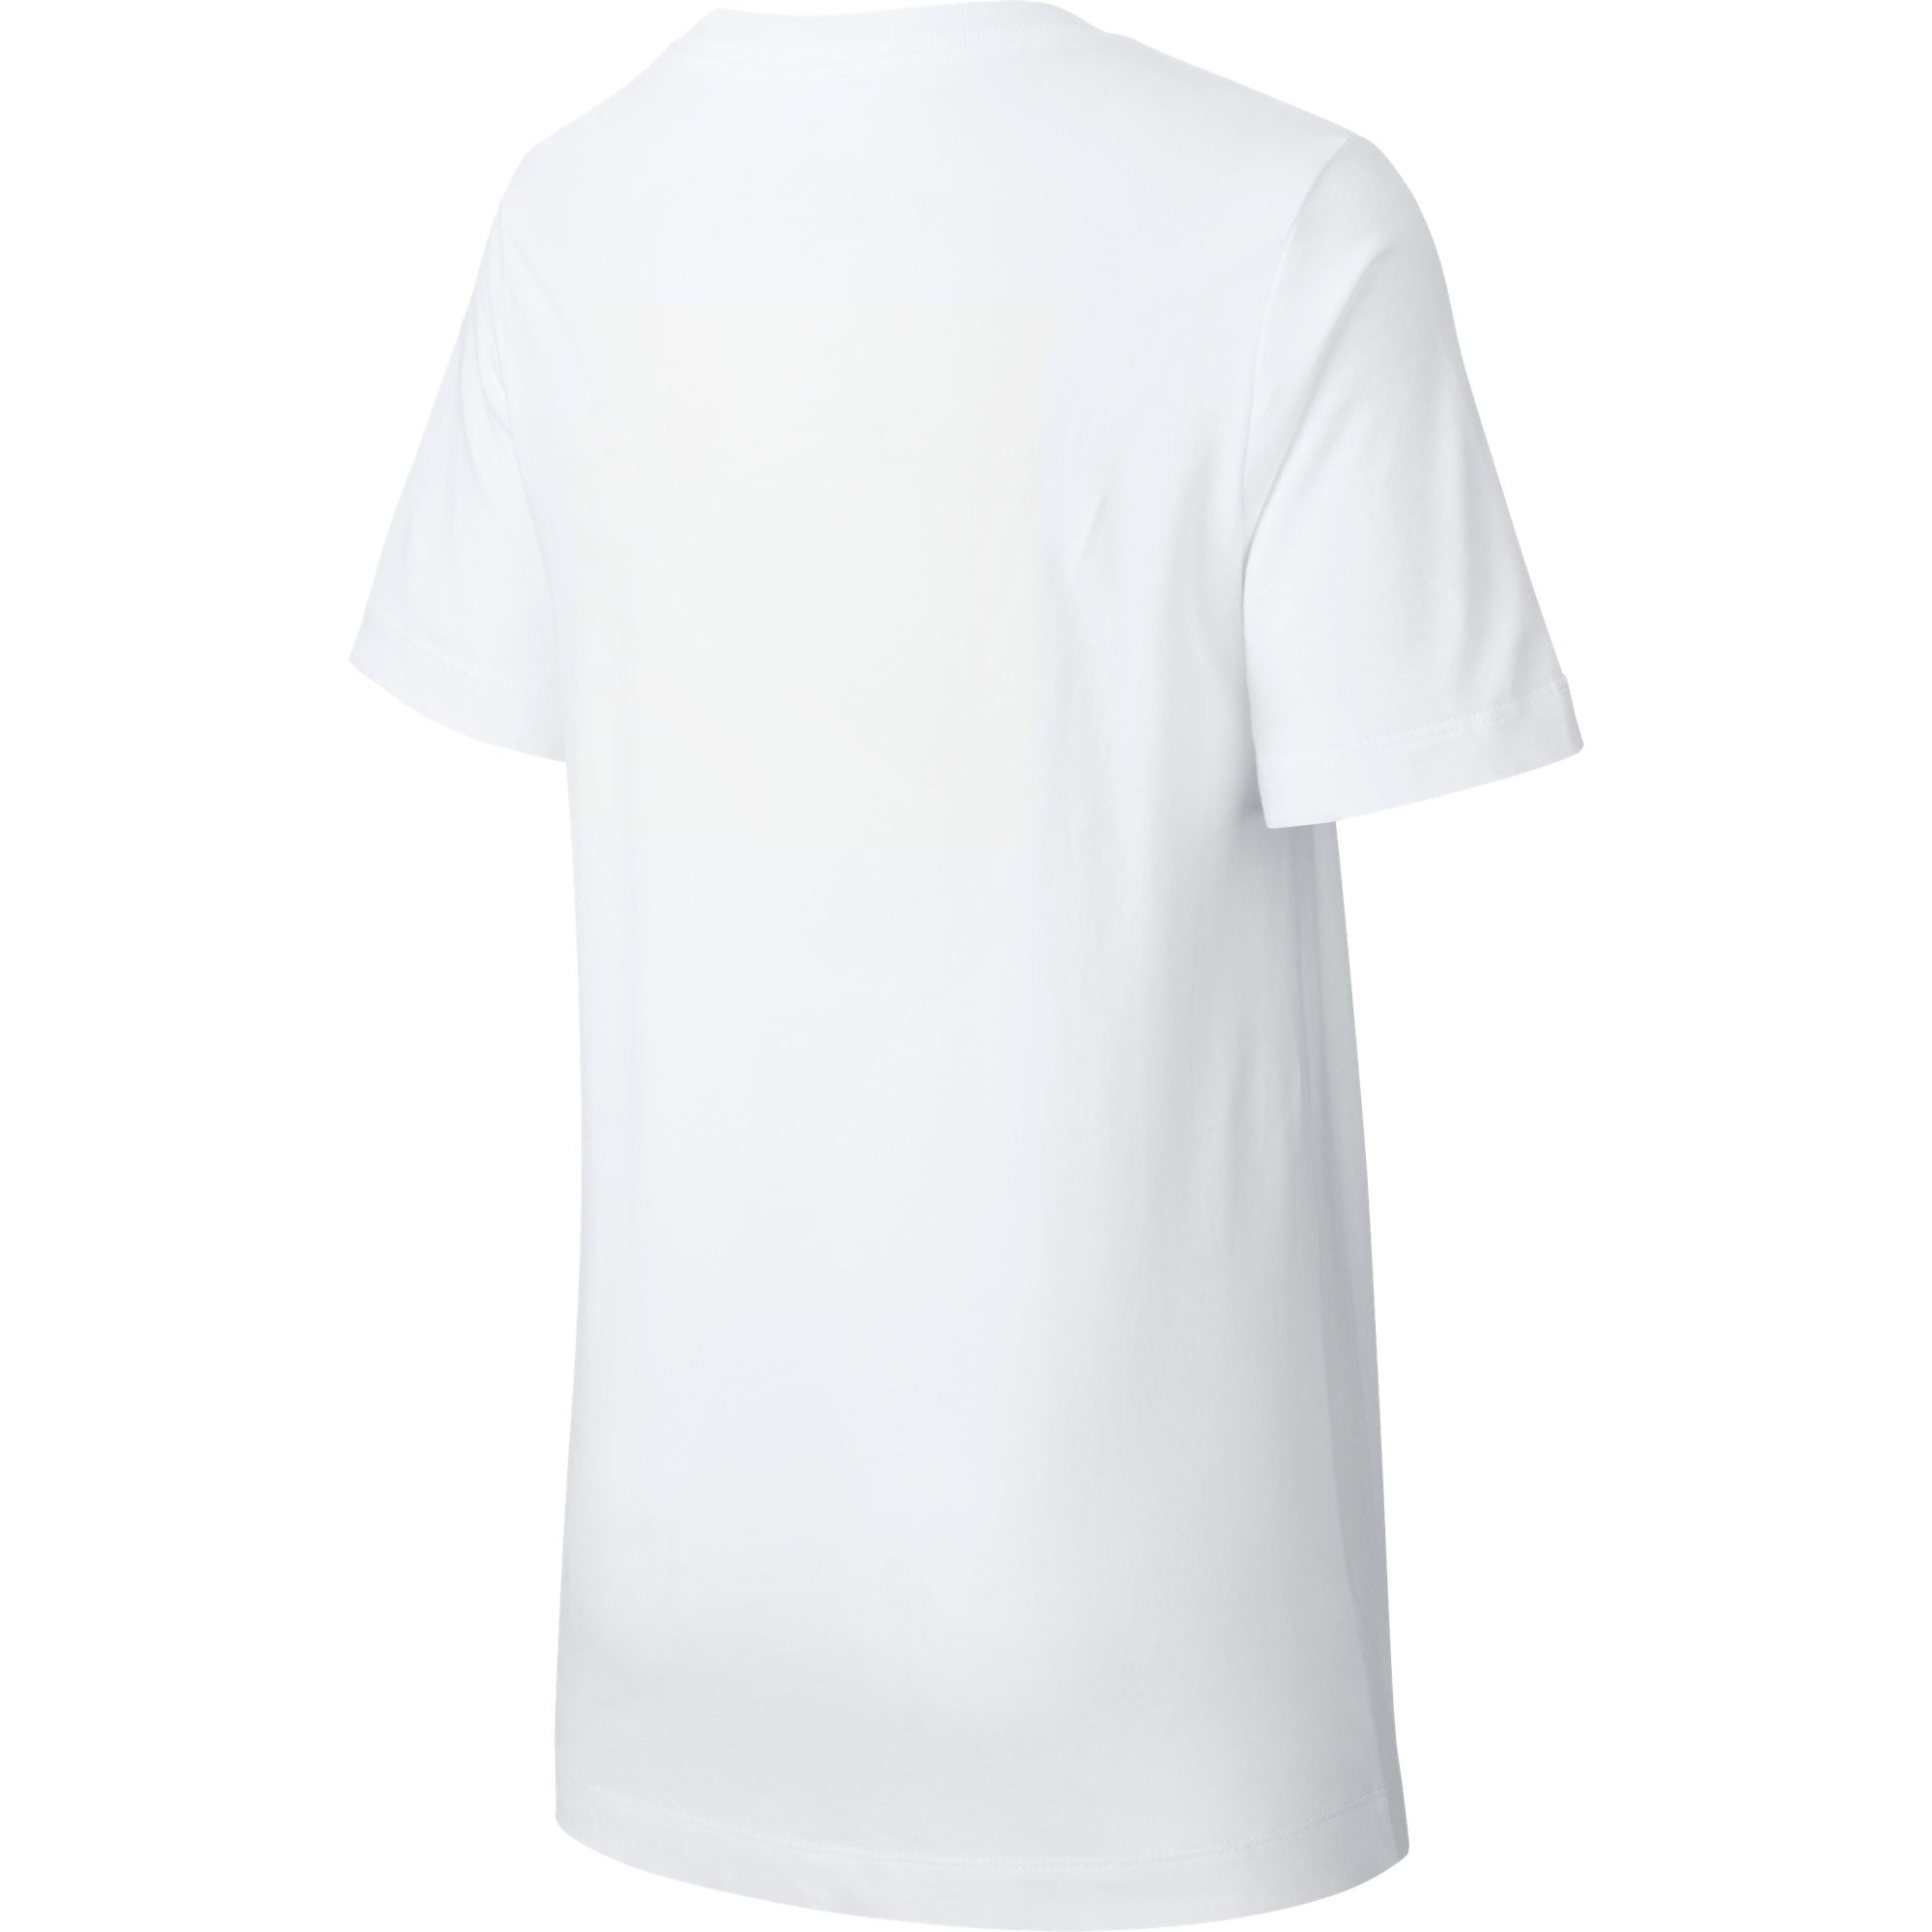 Nike Kids Ready To Play Tee - White